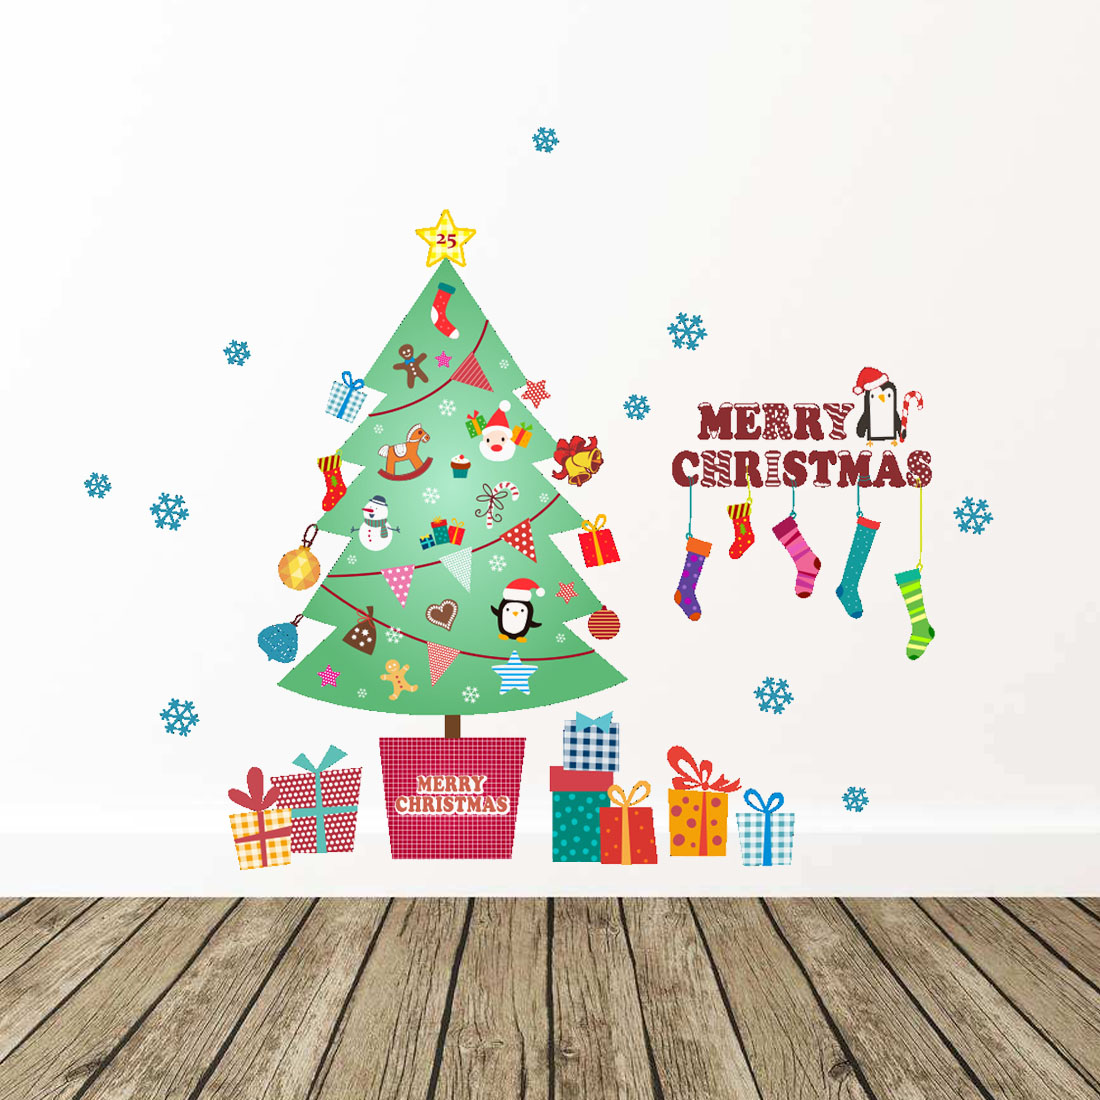 Xmas tree wall stickers 2018 happy new year merry christmas wall xmas tree wall stickers 2018 happy new year merry christmas wall sticker xmas home shop windows decals decor amipublicfo Images